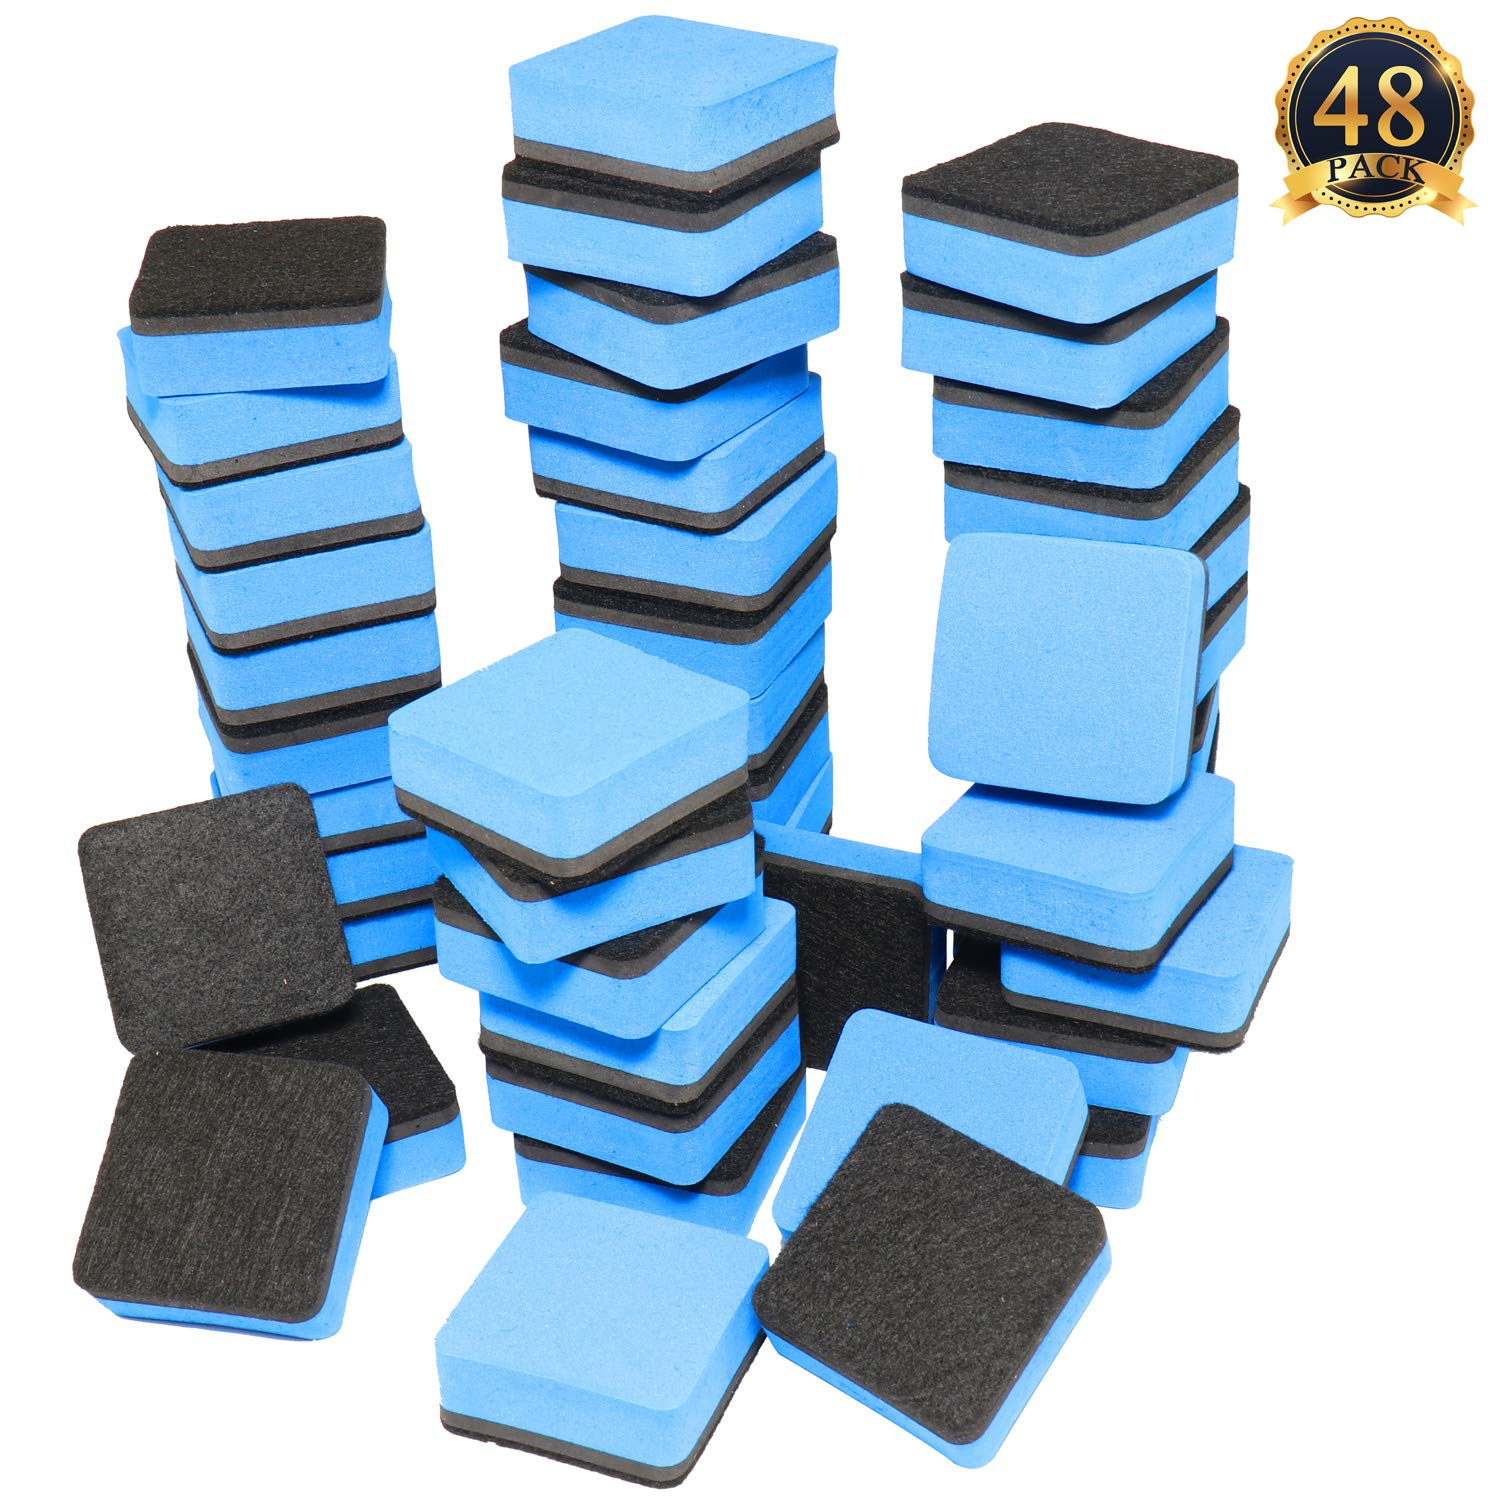 SUBANG 48-Pack Magnetic Whiteboard Eraser Magnetic Dry Erasers Bulk Chalkboard Cleansers Wiper for Kids, Home, School, and Office (Blue, 1.97 x 1.97inch)